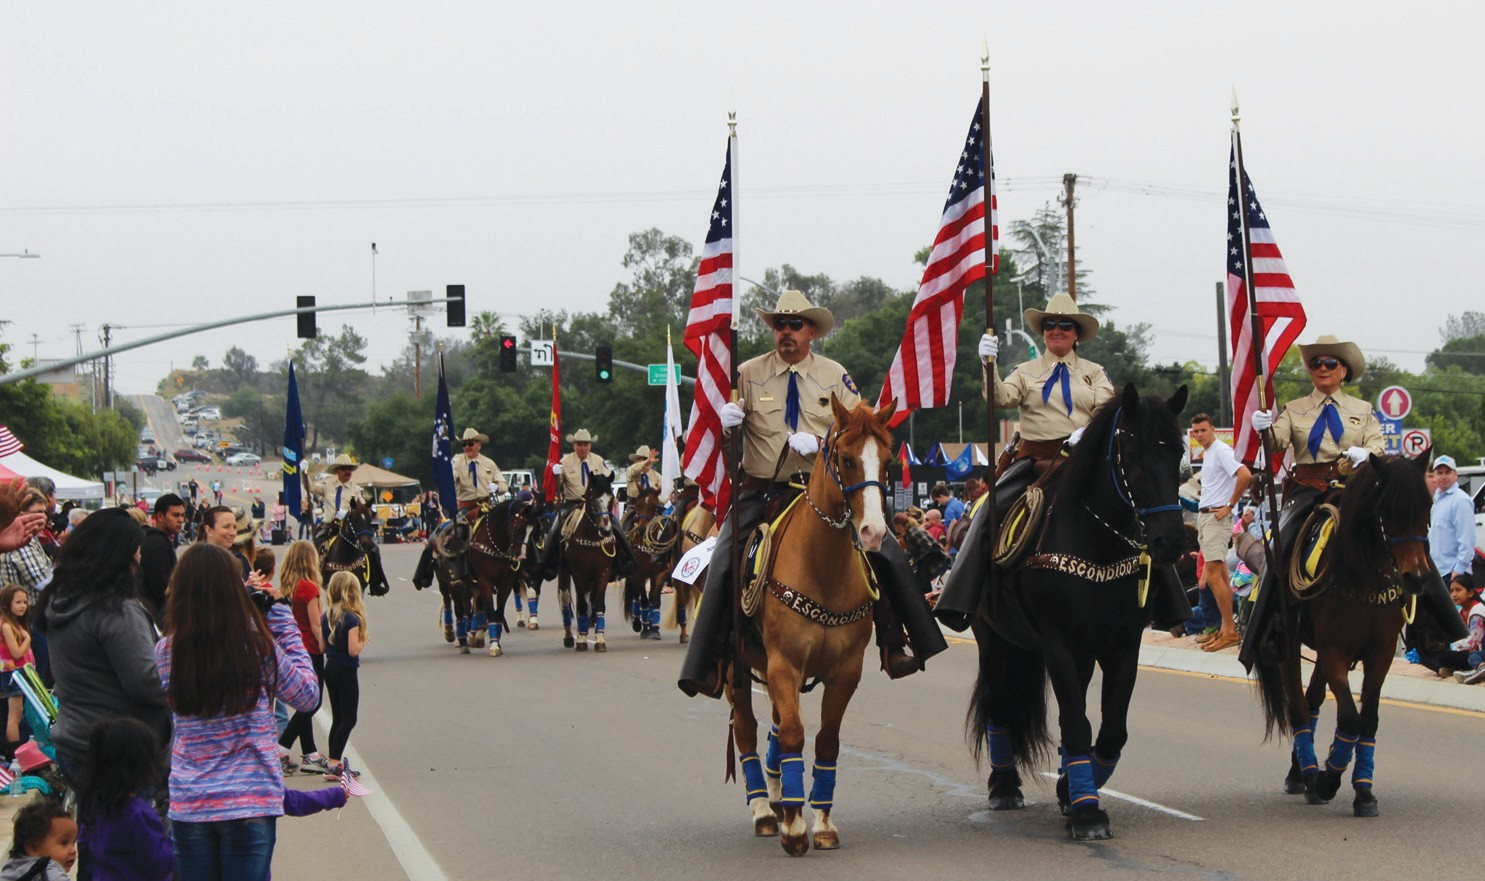 Several units from Escondido made a big impression at Saturday's Western Days Parade in Valley Center. They included the Escondido Mounted Posse, Escon­dido's Veterans of Foreign Wars Post 1513, and the American Legion Riders chapter 149.